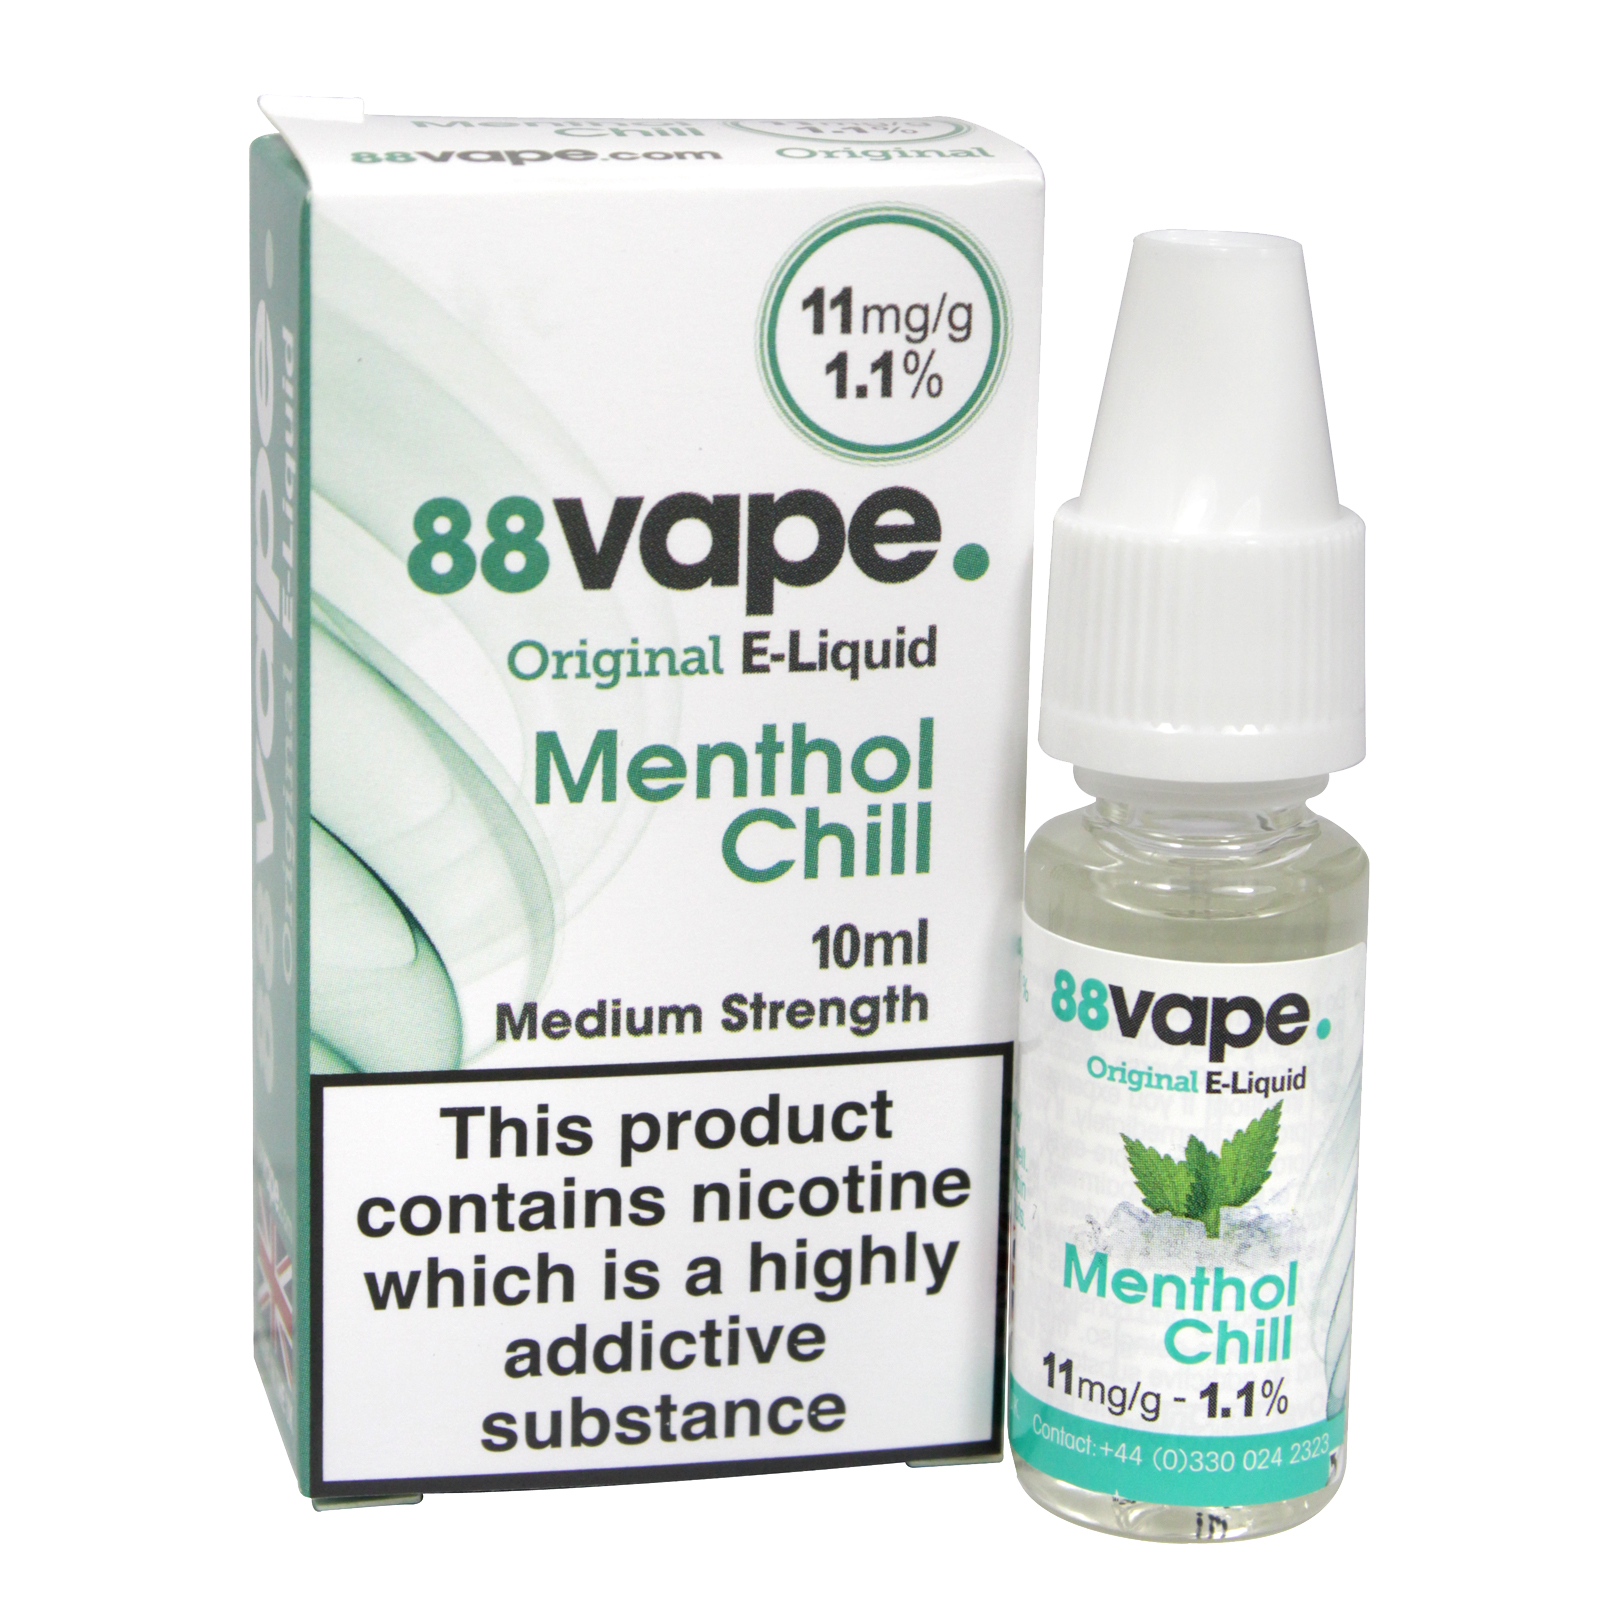 88VAPE 10ML E-LIQUID 11MG MENTHOL CHILL